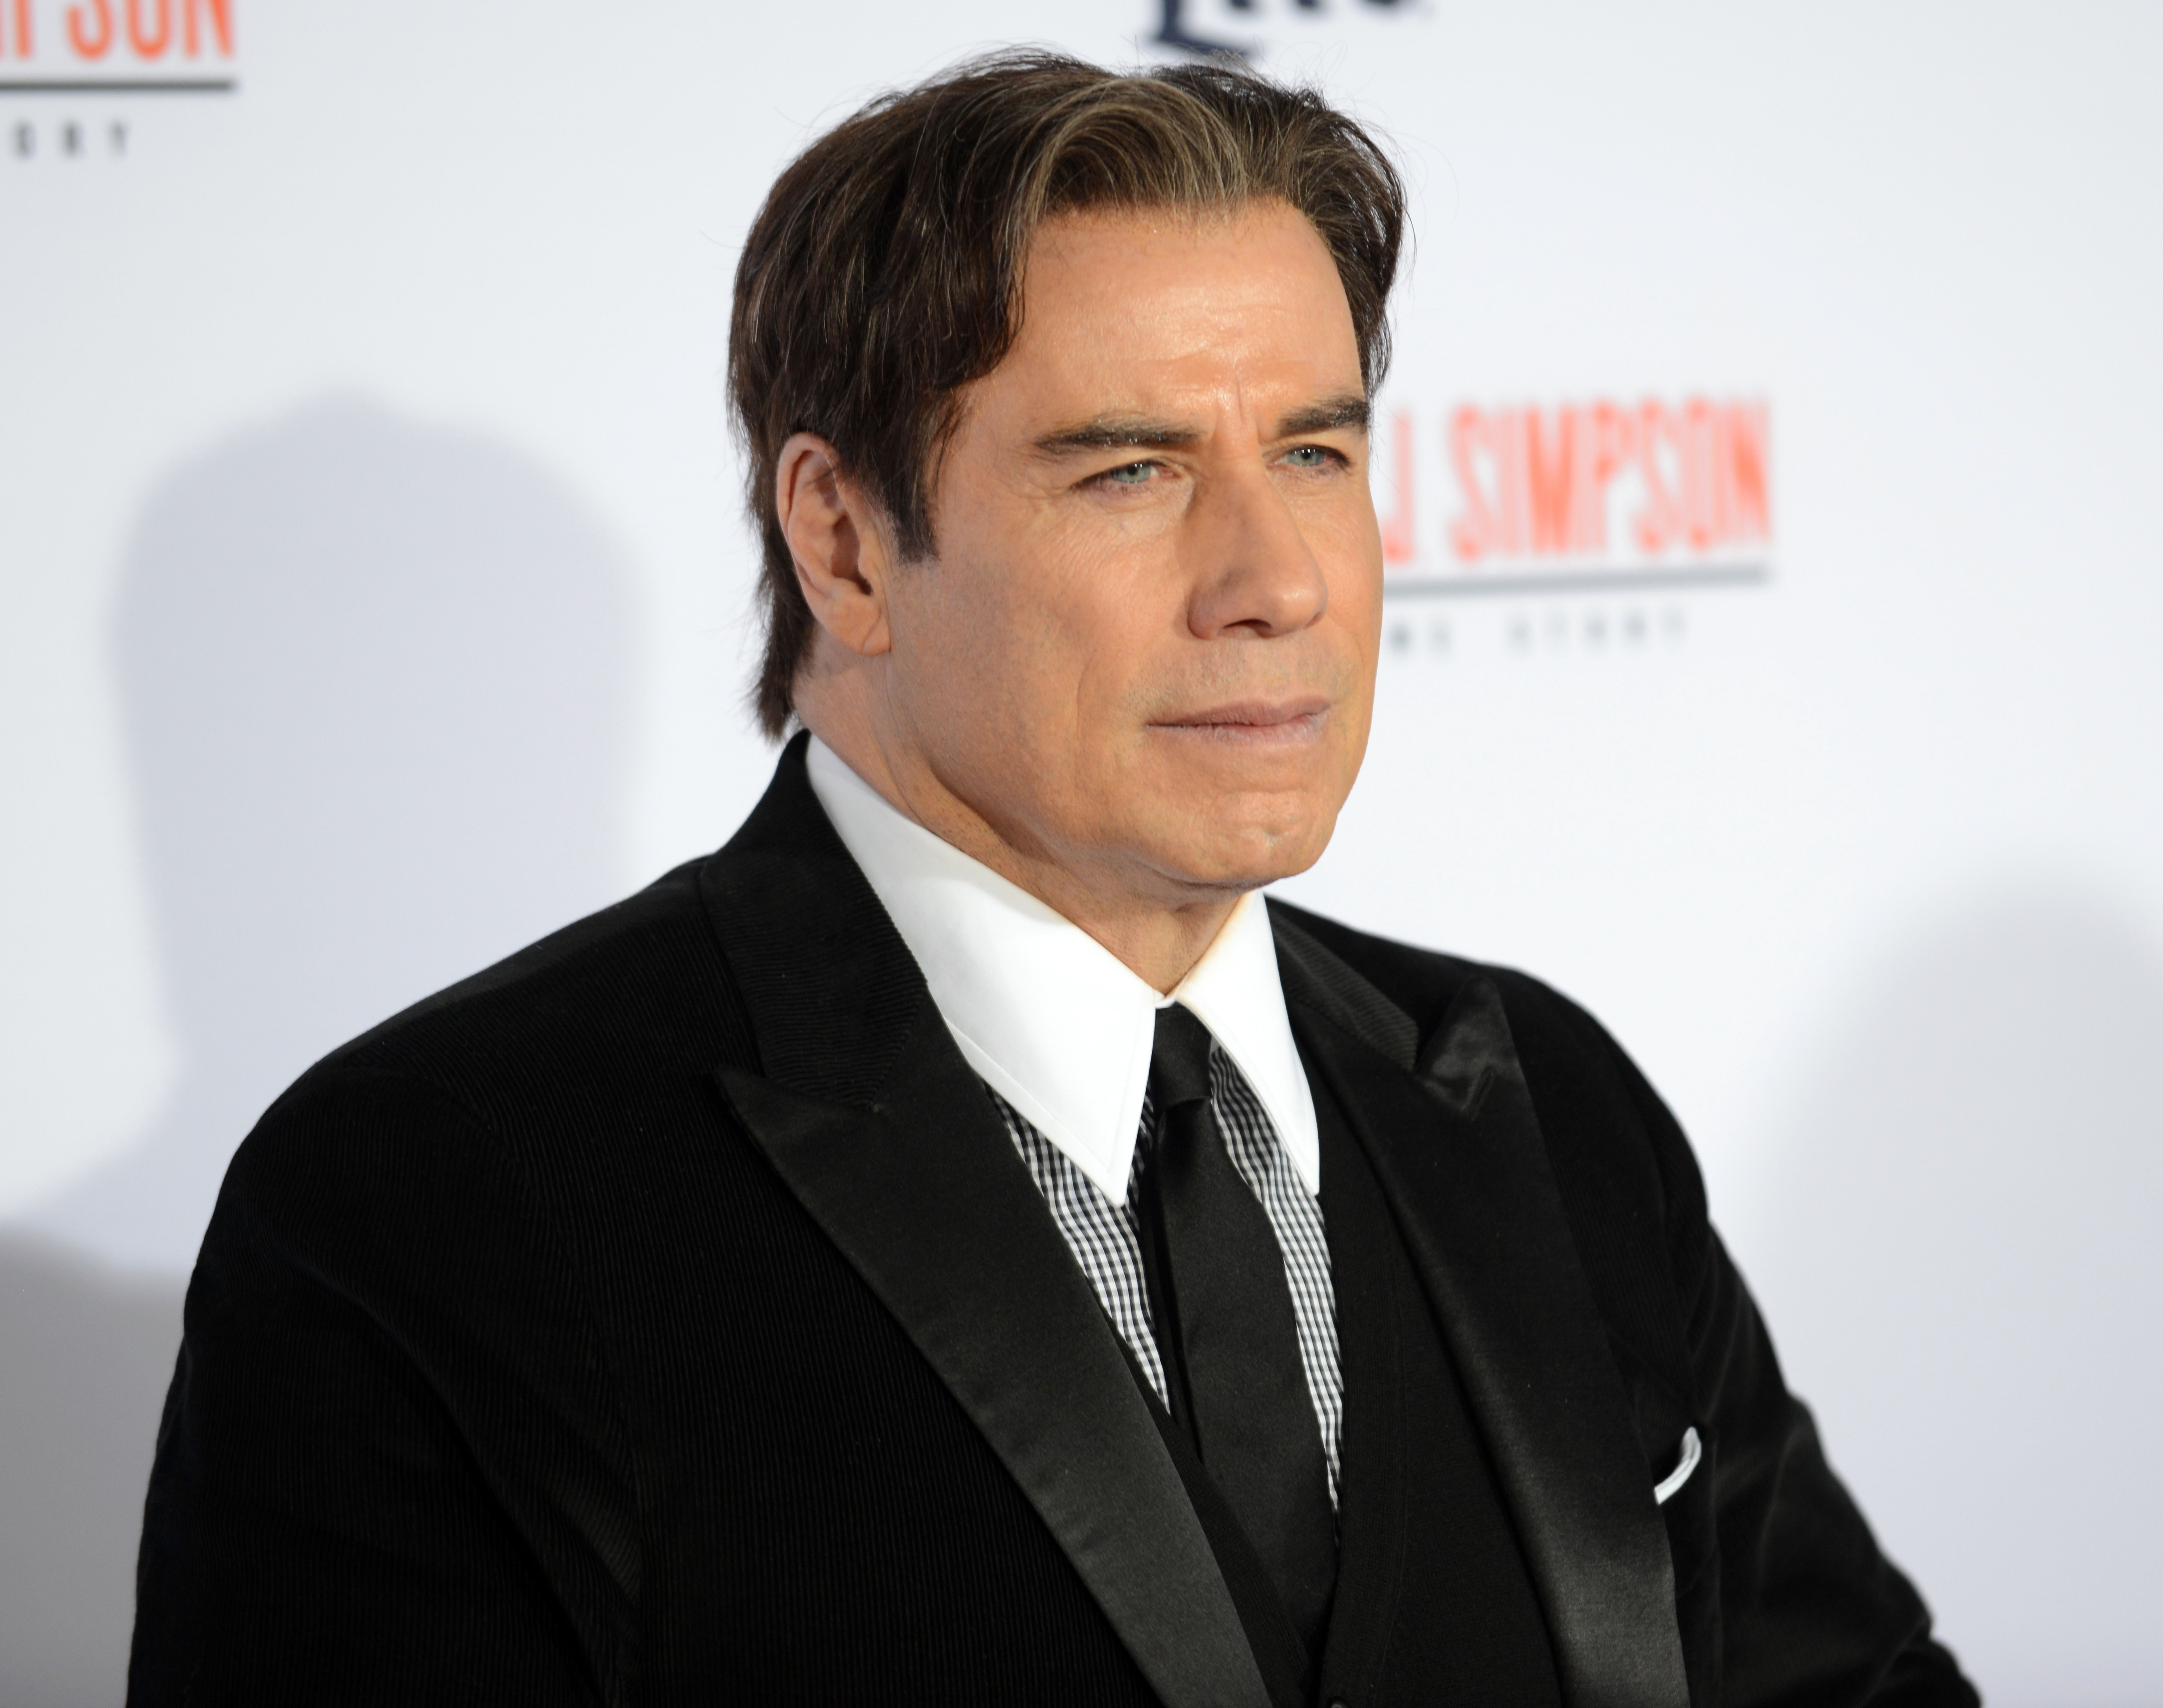 """John Travolta at the premiere of """"FX's """"American Crime Story - The People V. O.J. Simpson"""" held at Westwood Village Theatre on January 27, 2016 in Westwood, California 